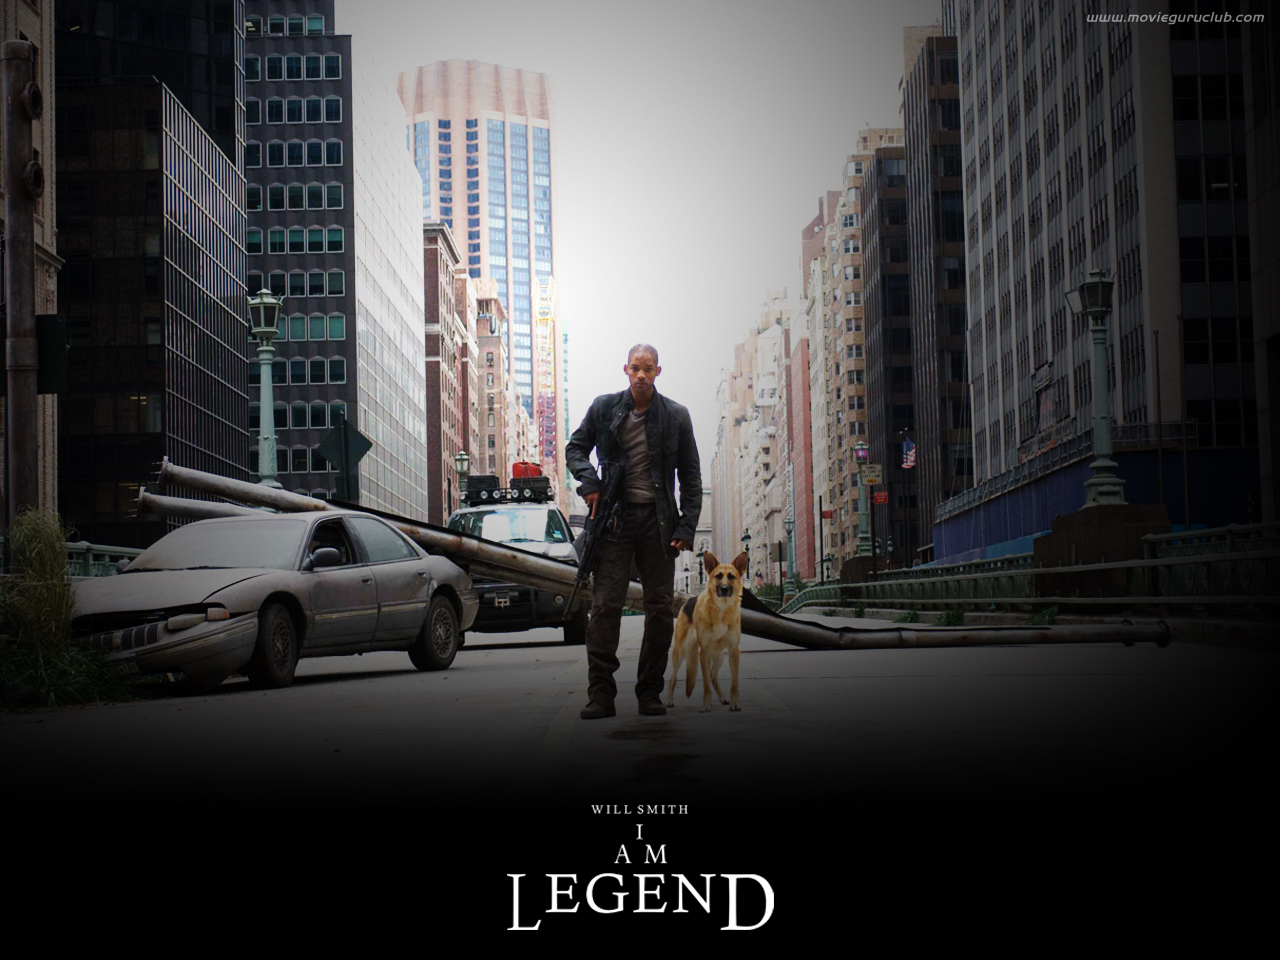 I Am Legend images iamlegend HD wallpaper and background 1280x960